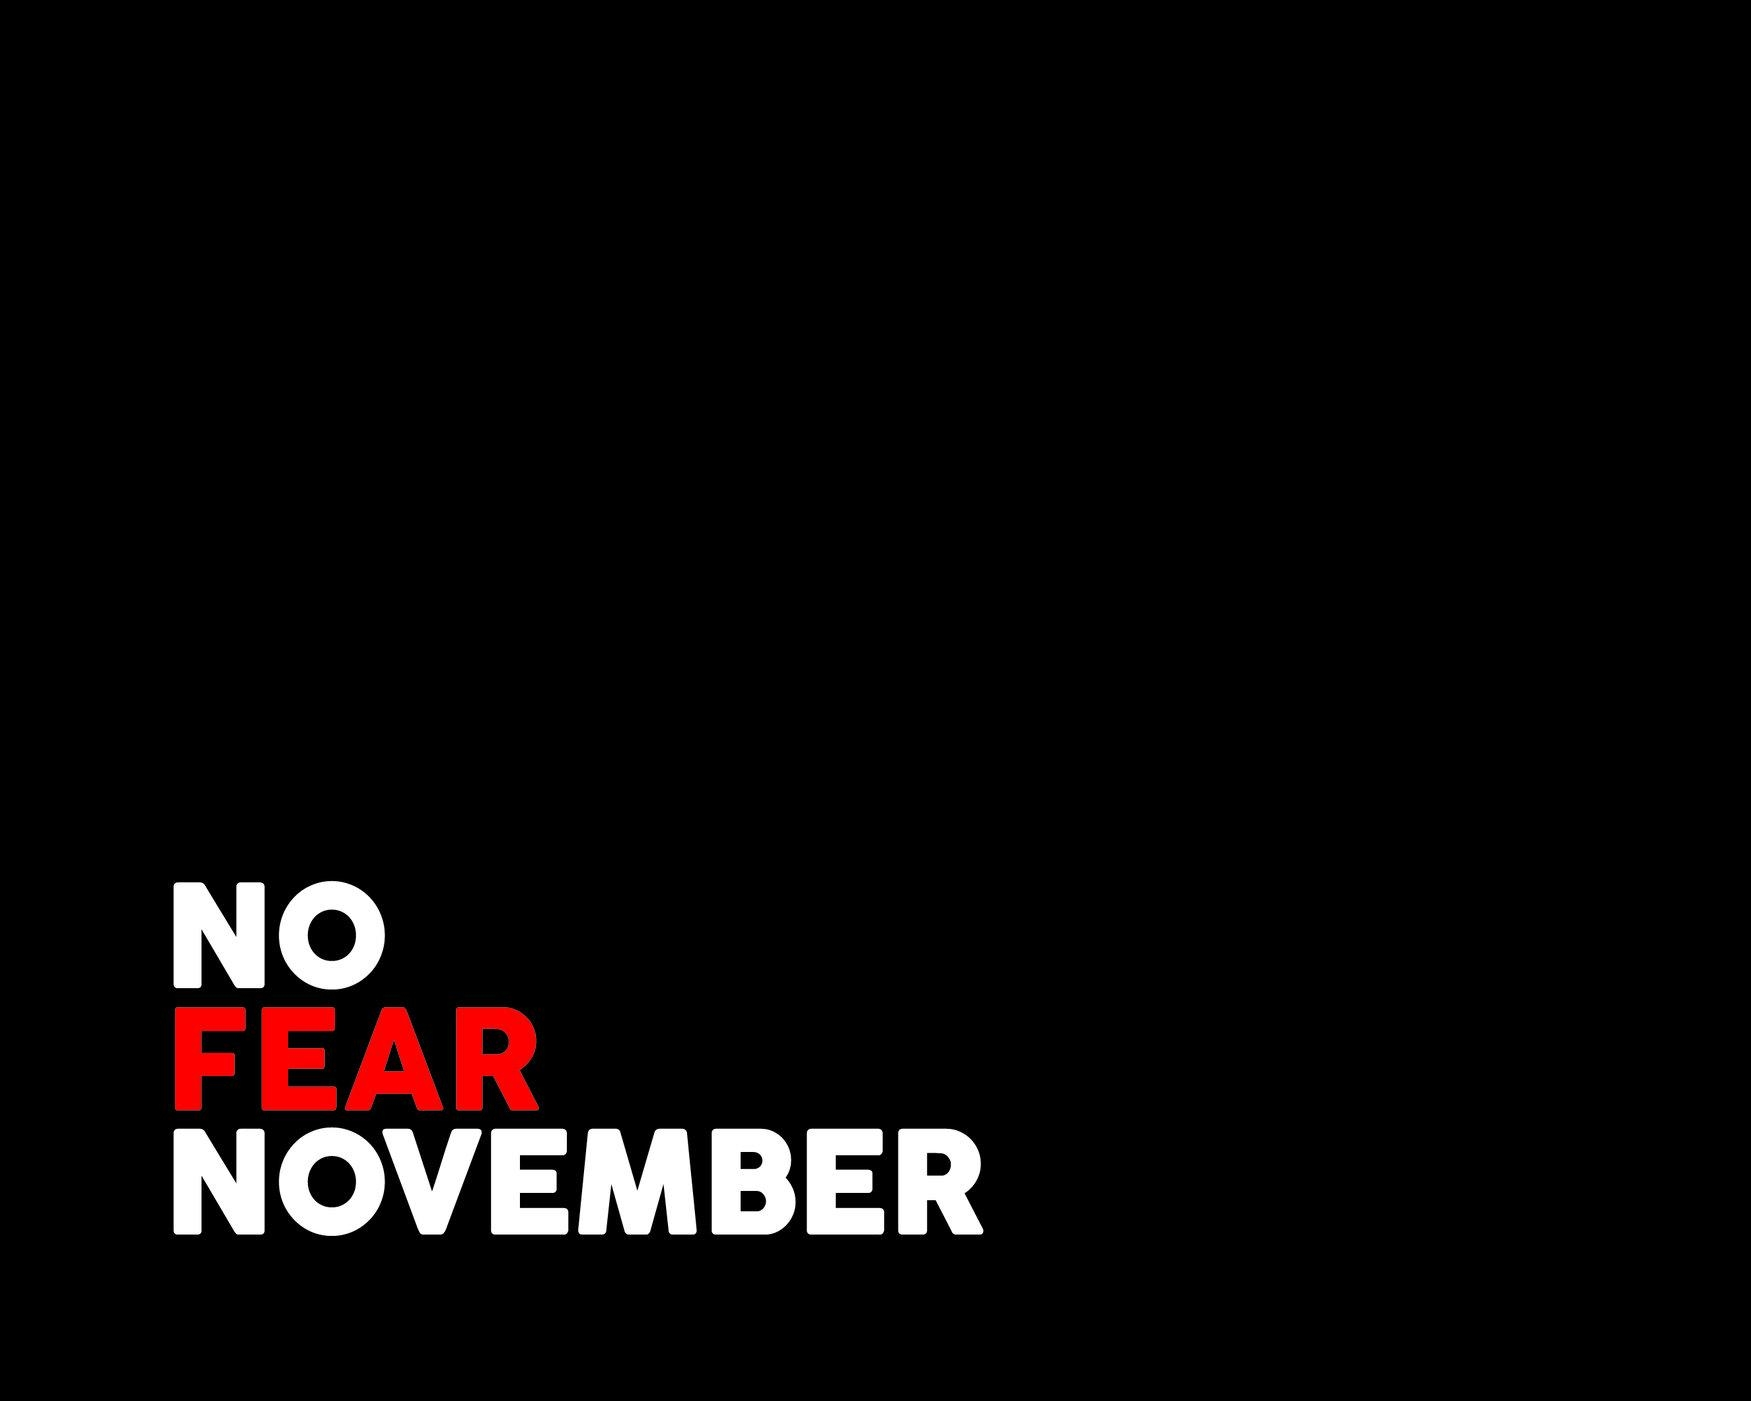 No fear november slide.jpg